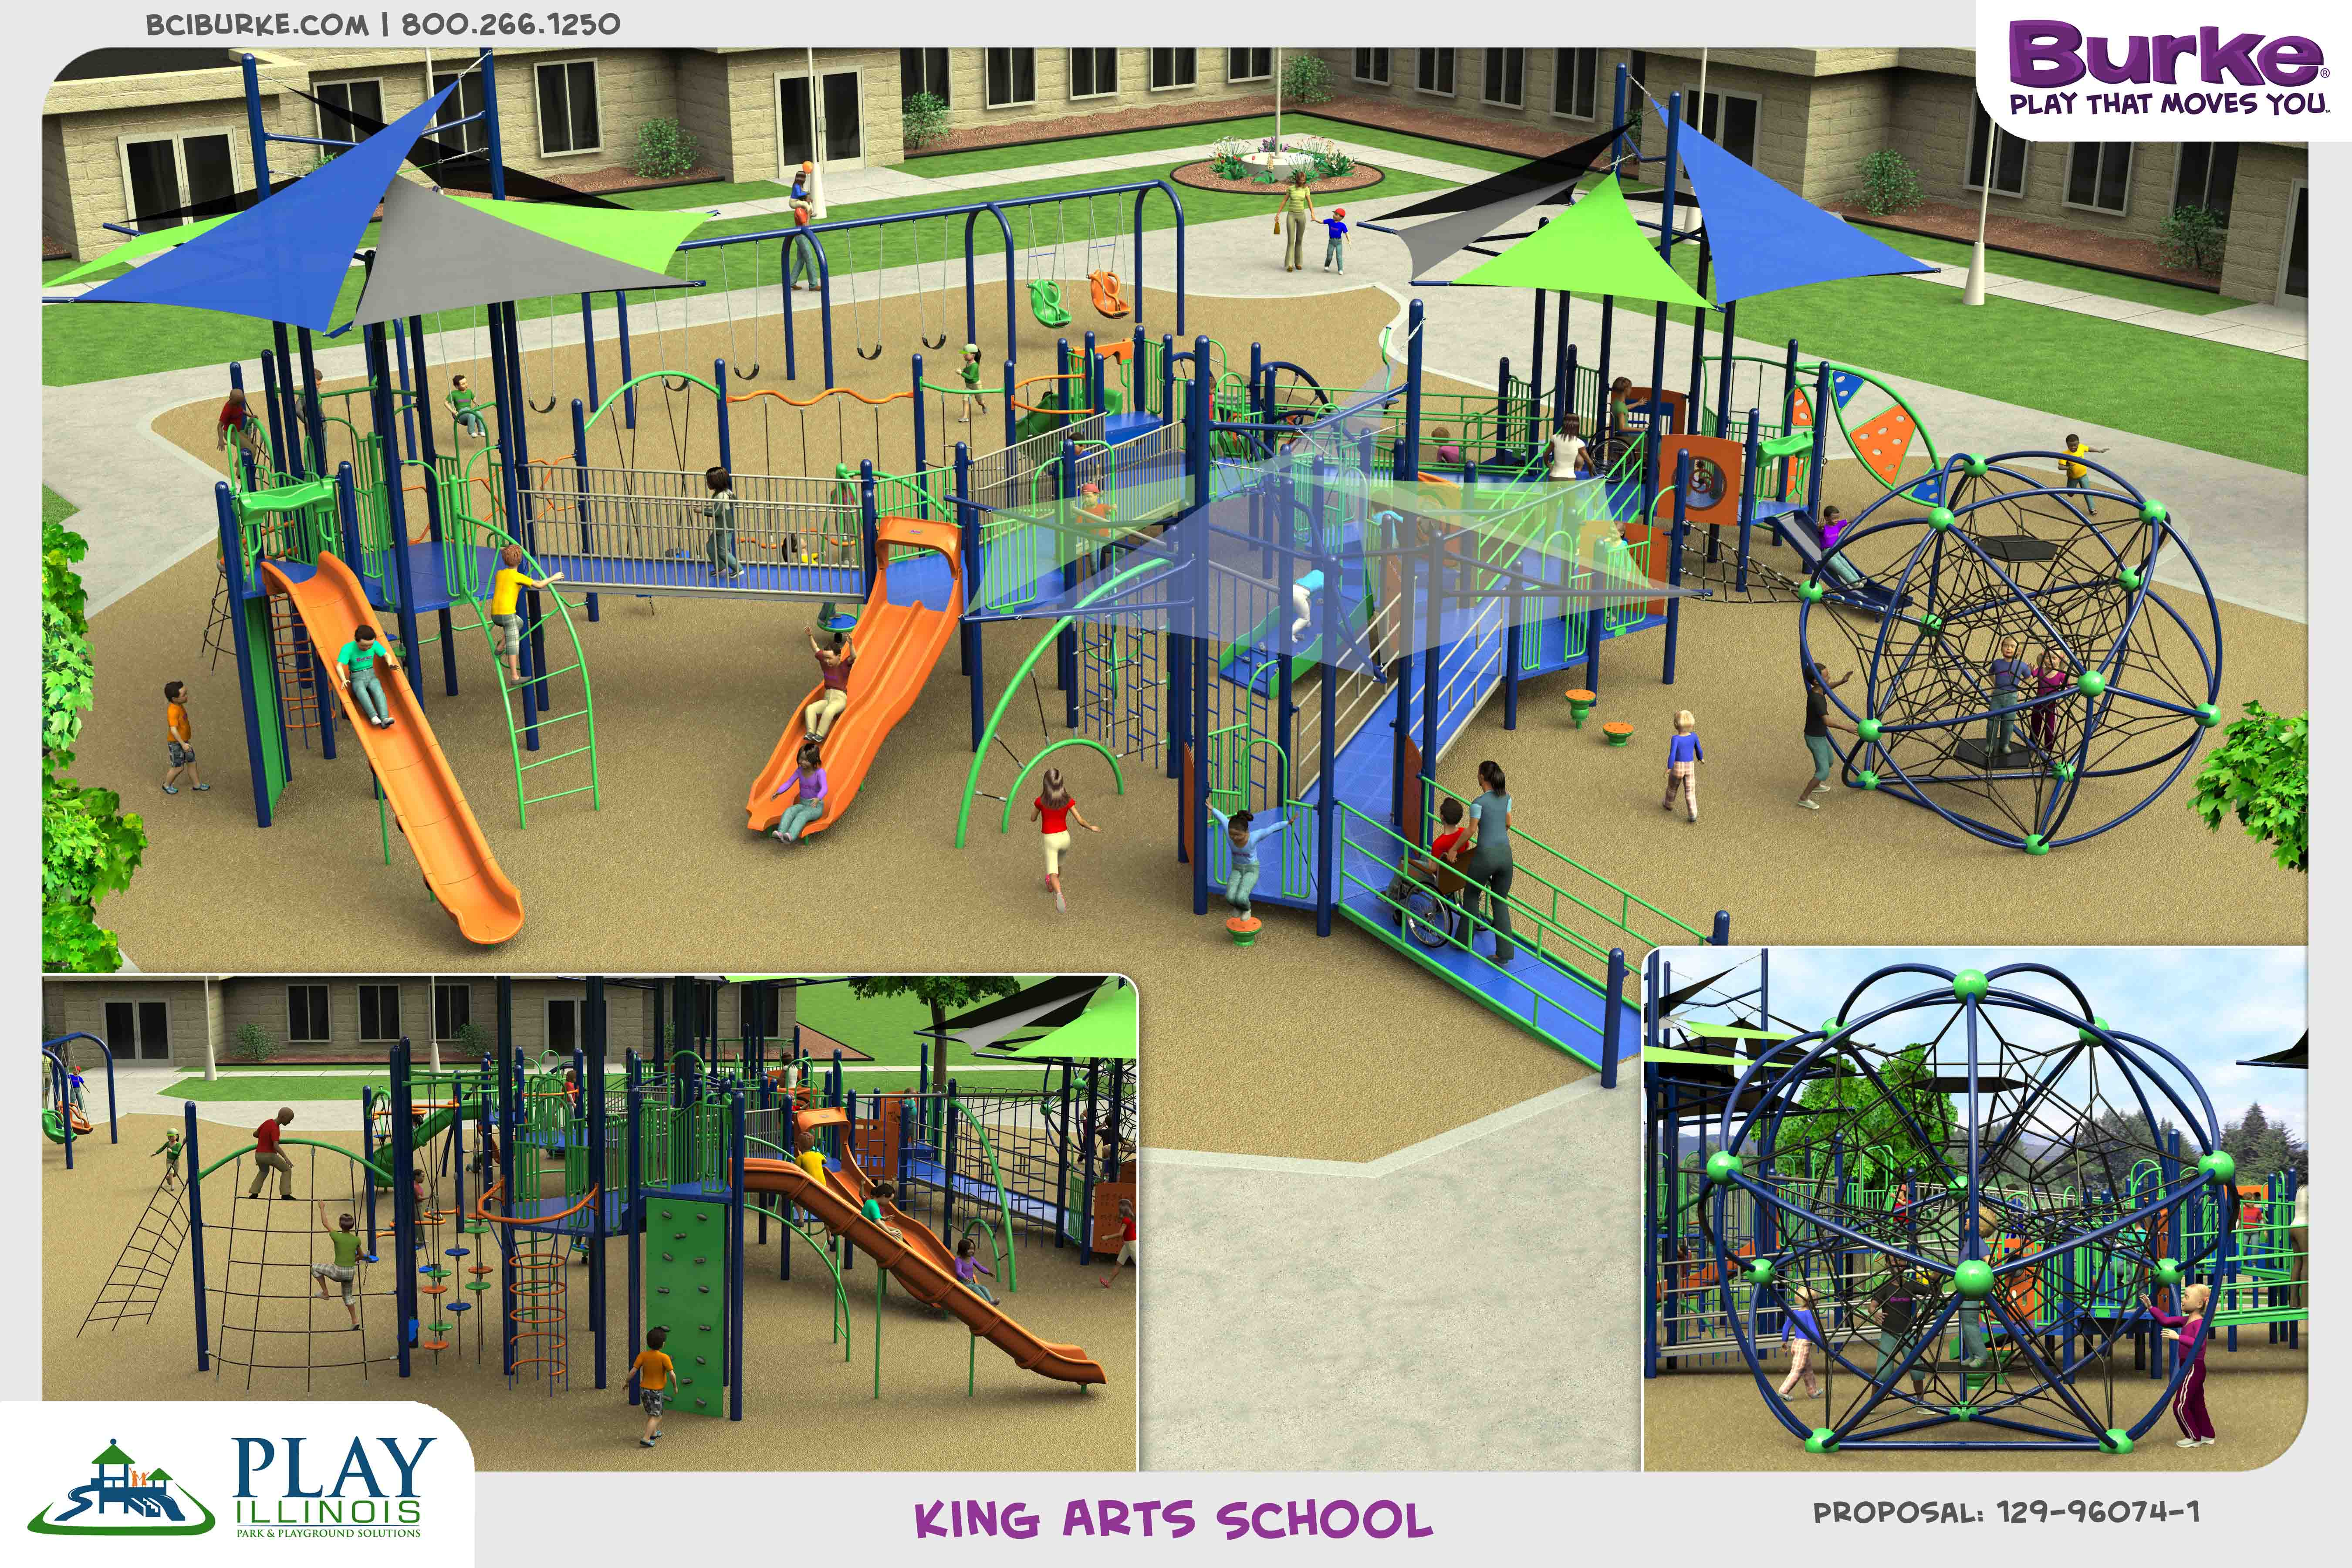 KingArtsSchool dream build play experience accessible playgrounds